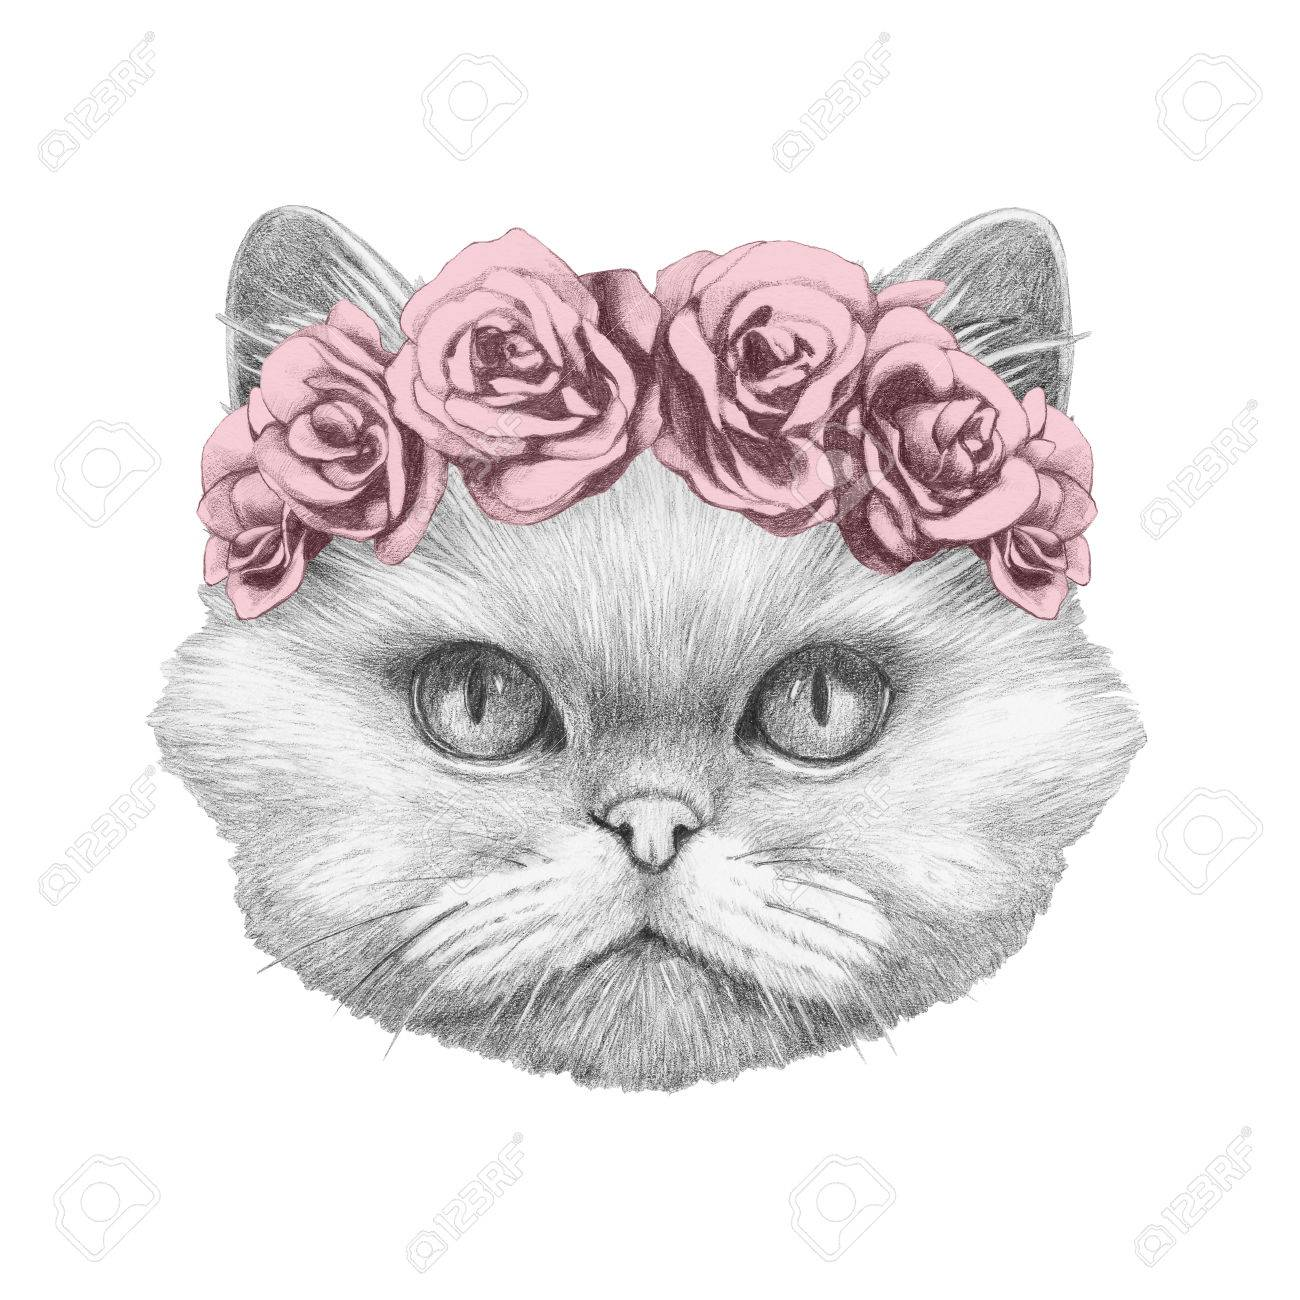 Portrait of persian cat with floral head wreath hand drawn illustration stock illustration